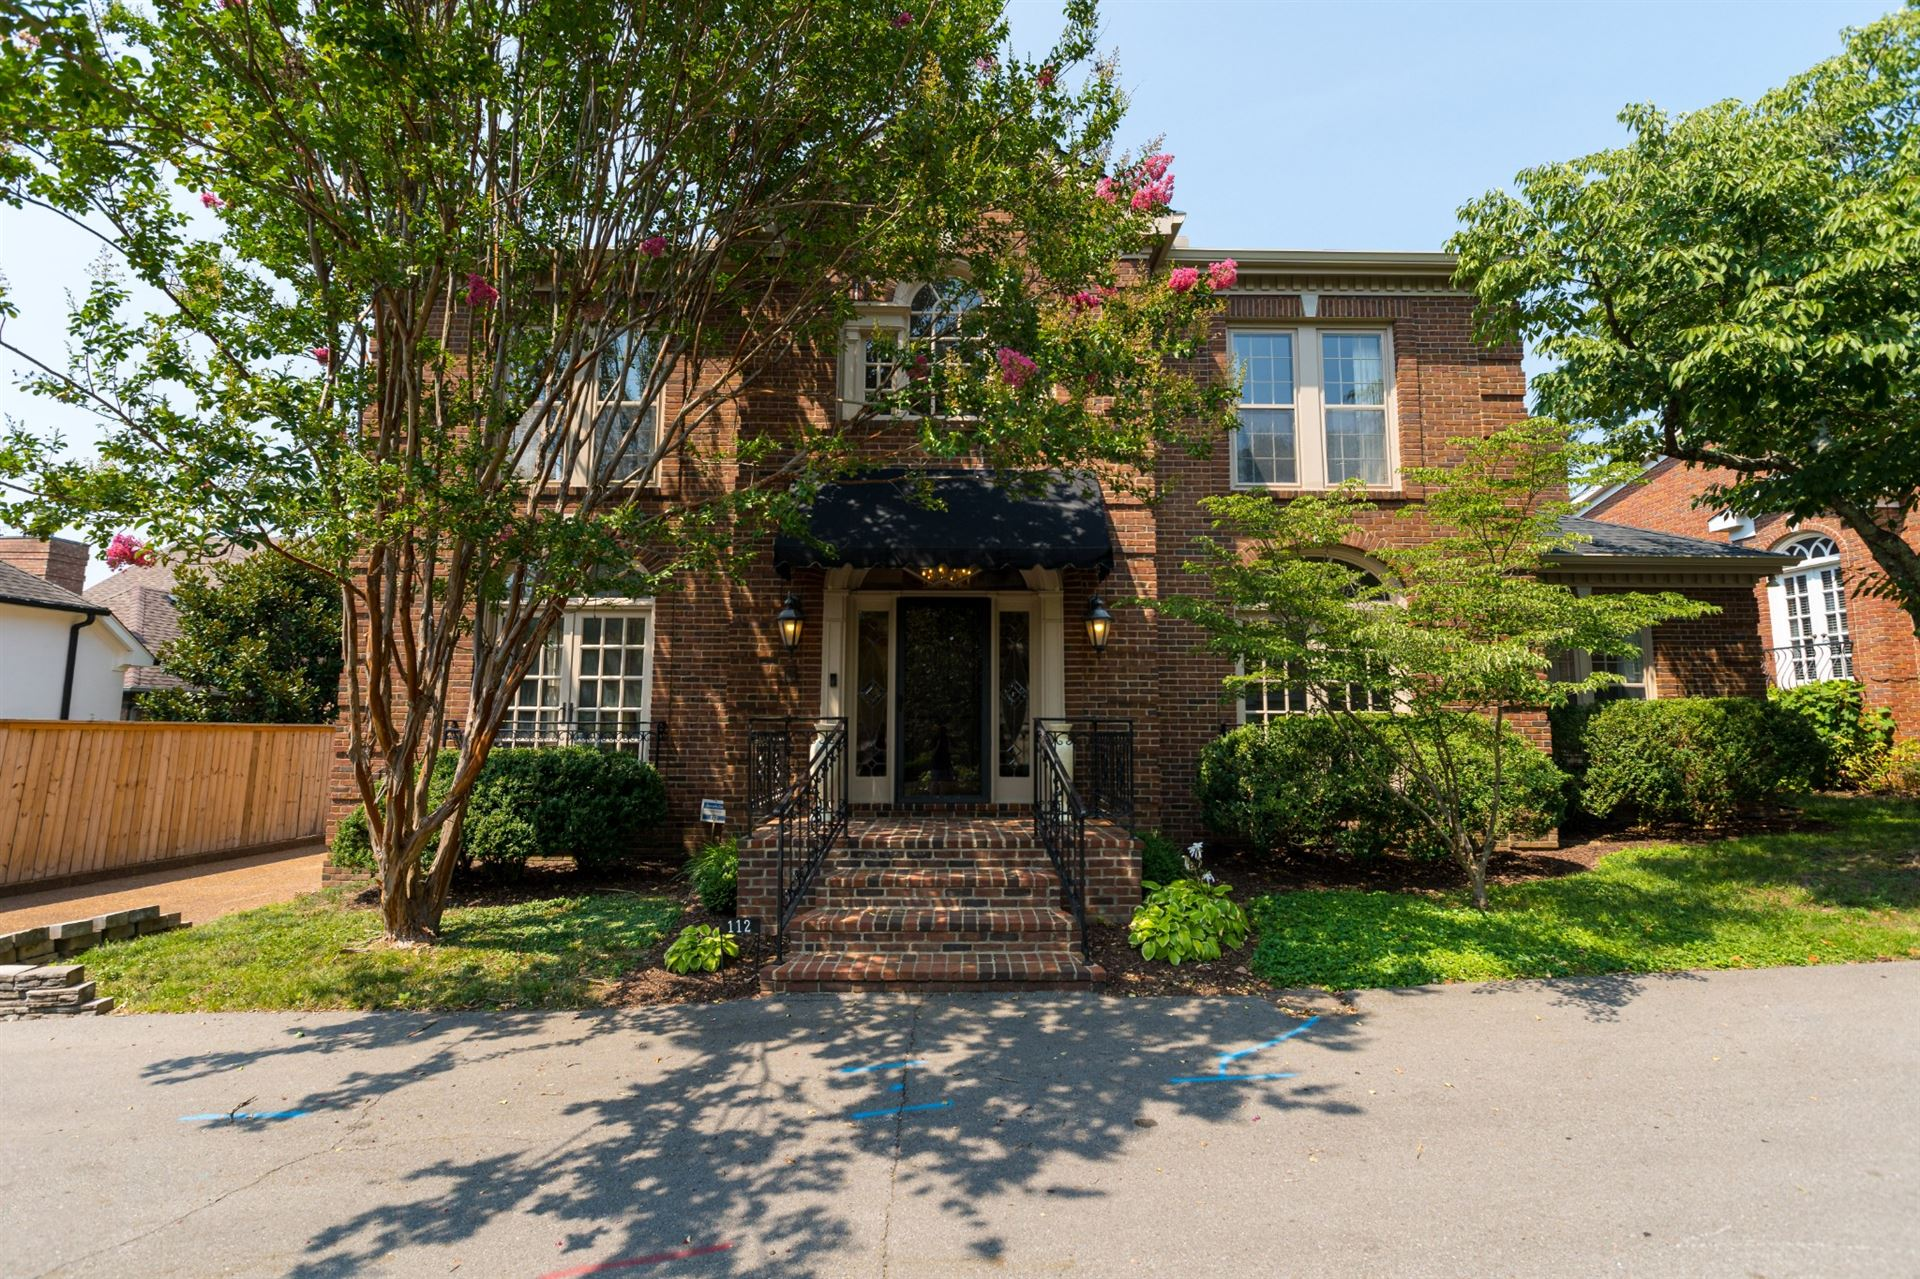 Photo of 112 The Commons Dr, Nashville, TN 37215 (MLS # 2277027)